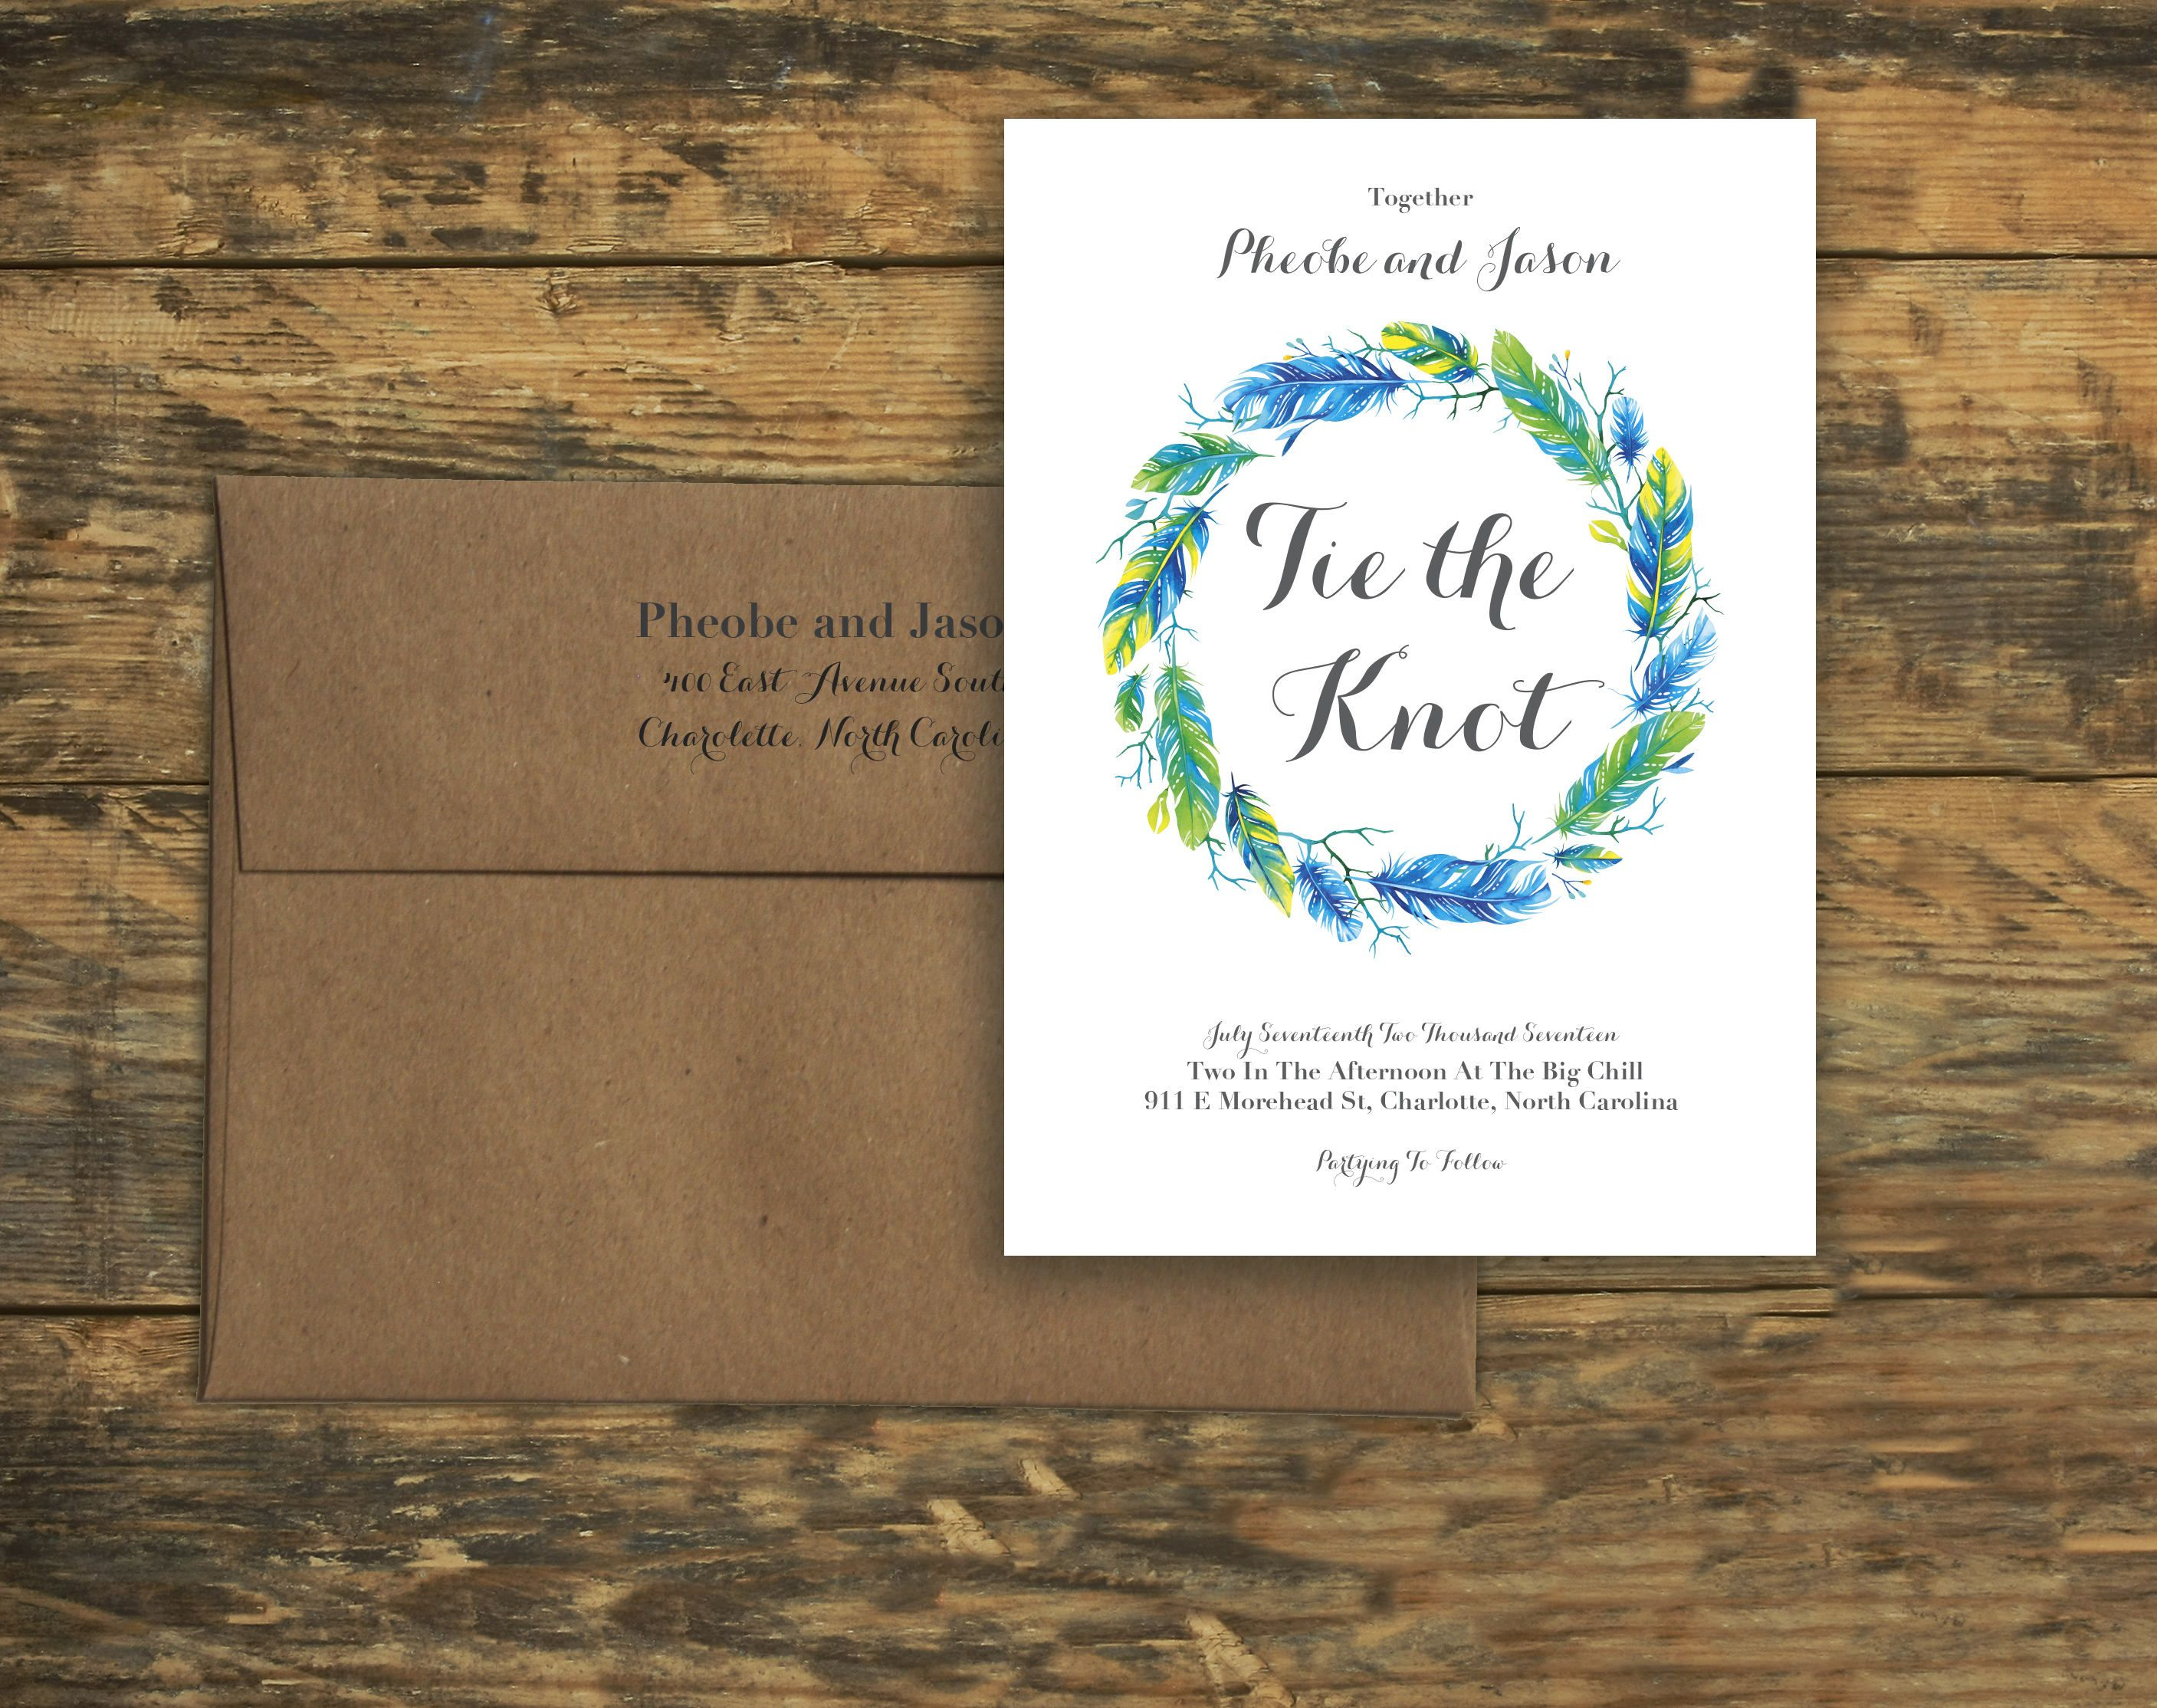 wedding invitation photo%0A Bold Blue Feathers Design Wedding Invitation Set  Tie the Knot  With  Response Card by